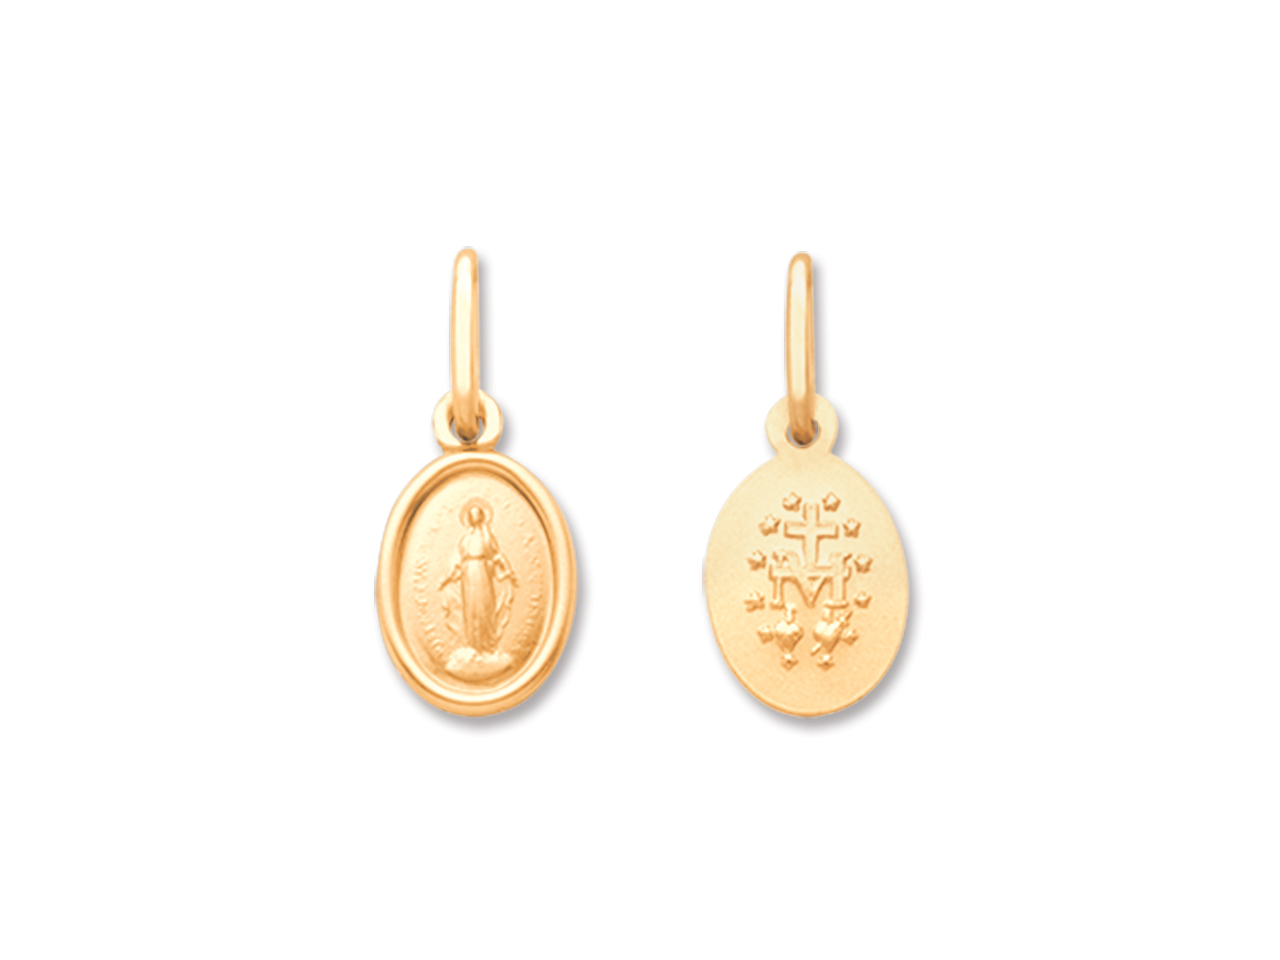 Médaille Vierge miraculeuse 9 mm, Or jaune 18k